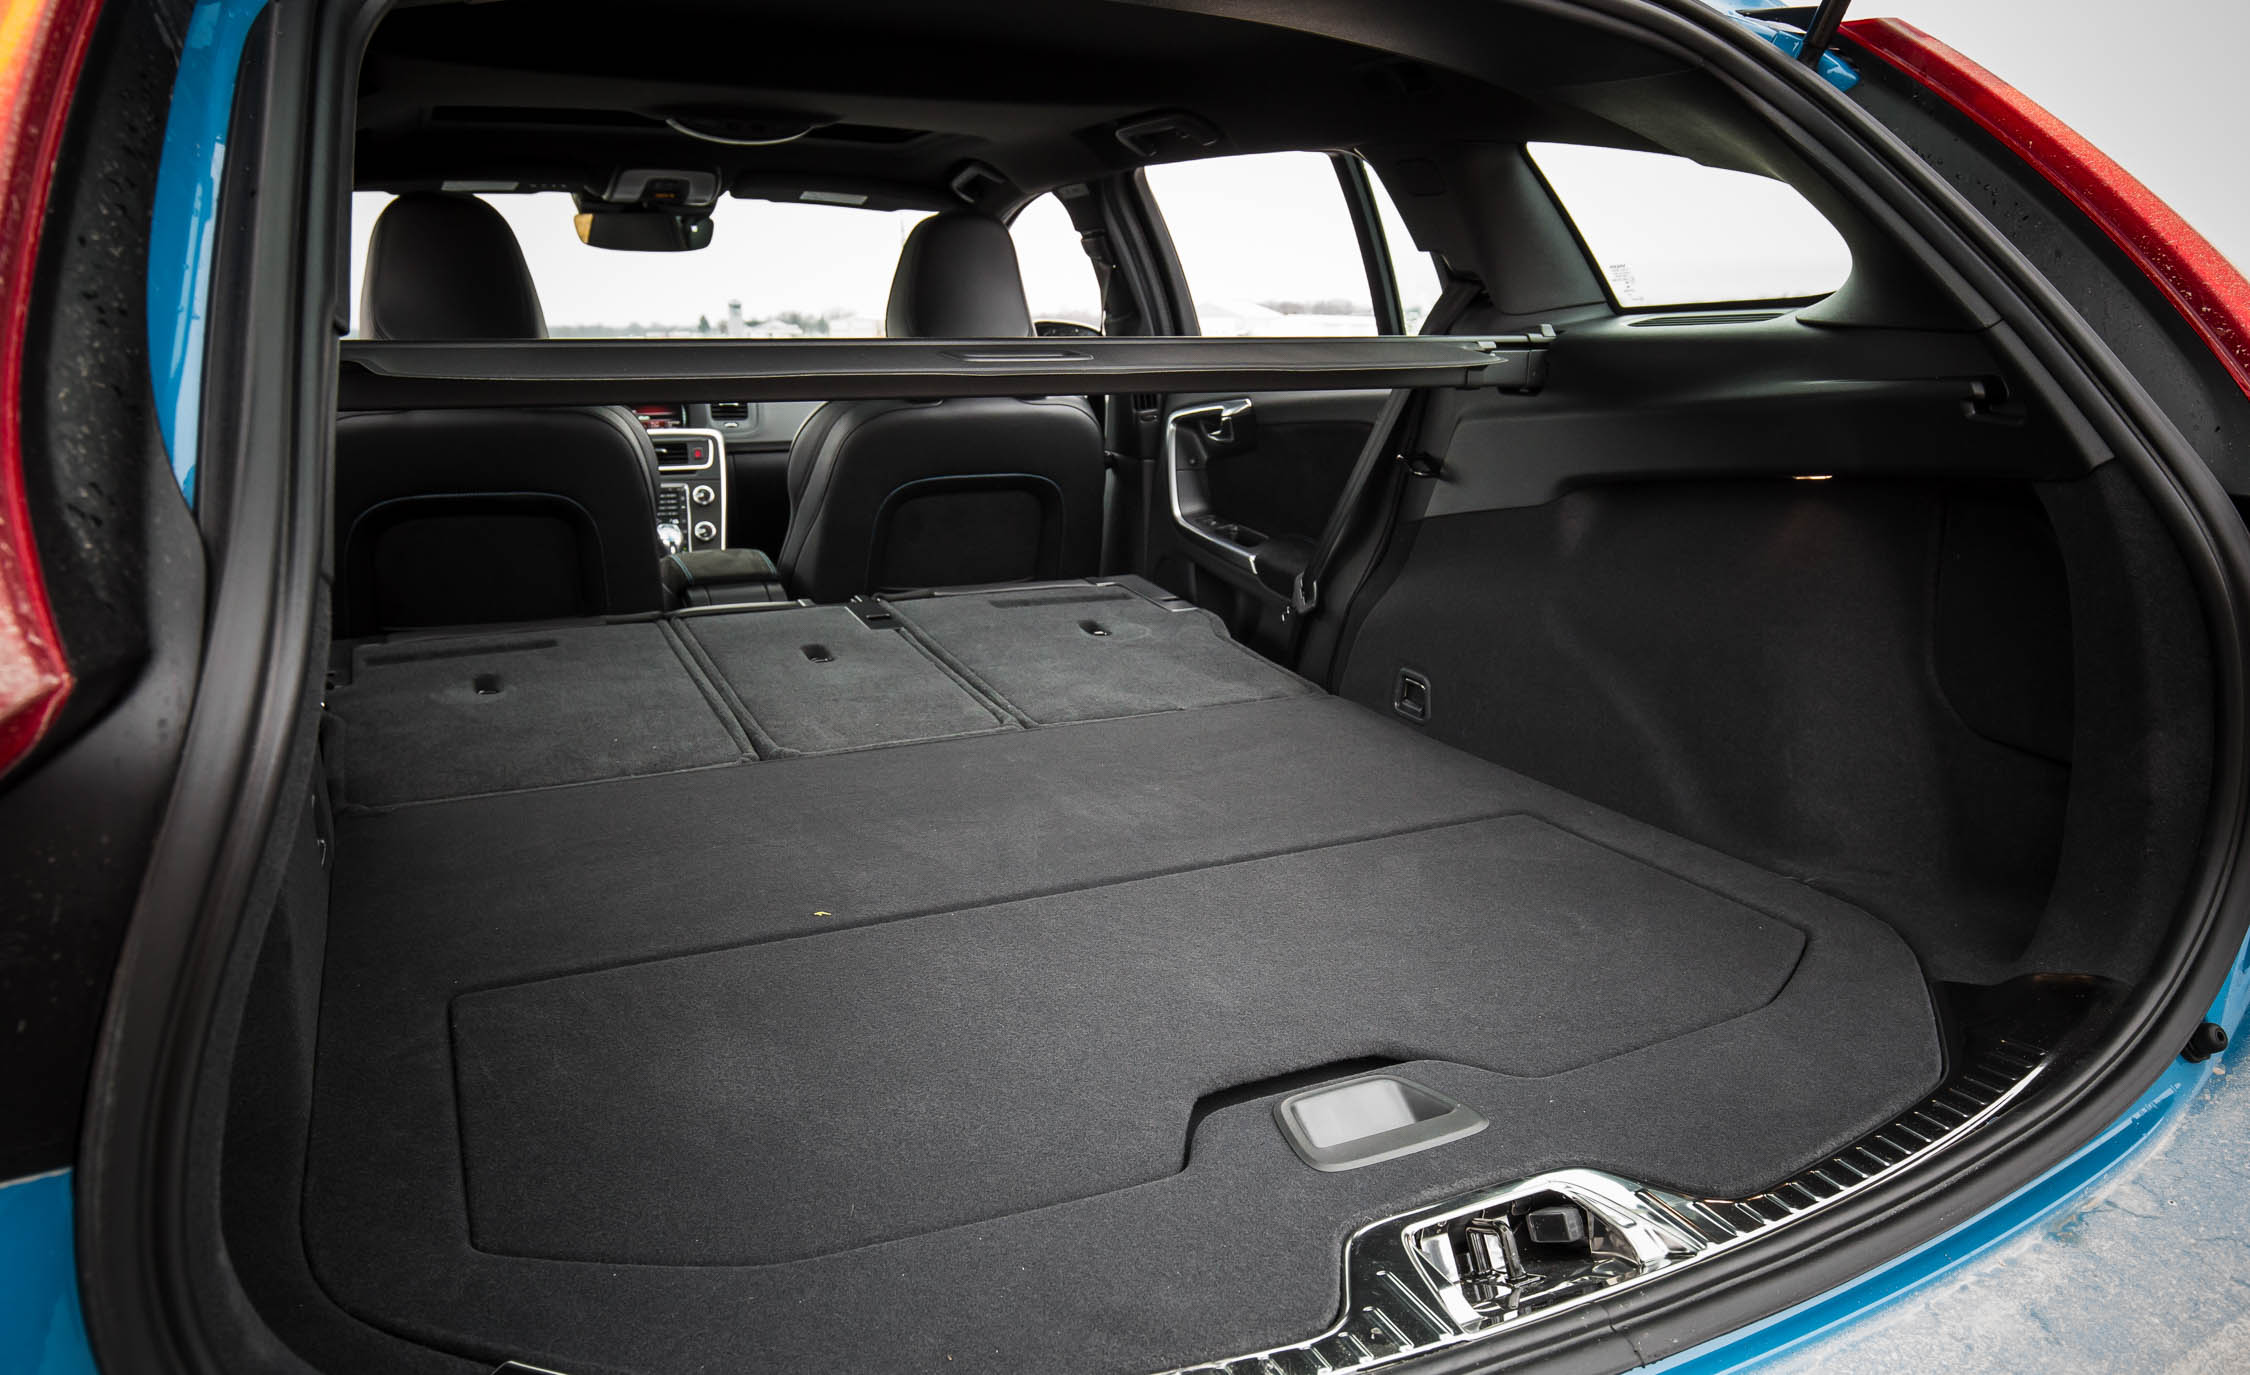 2017 Volvo V60 Polestar Interior View Cargo Seats Folded (Photo 30 of 53)